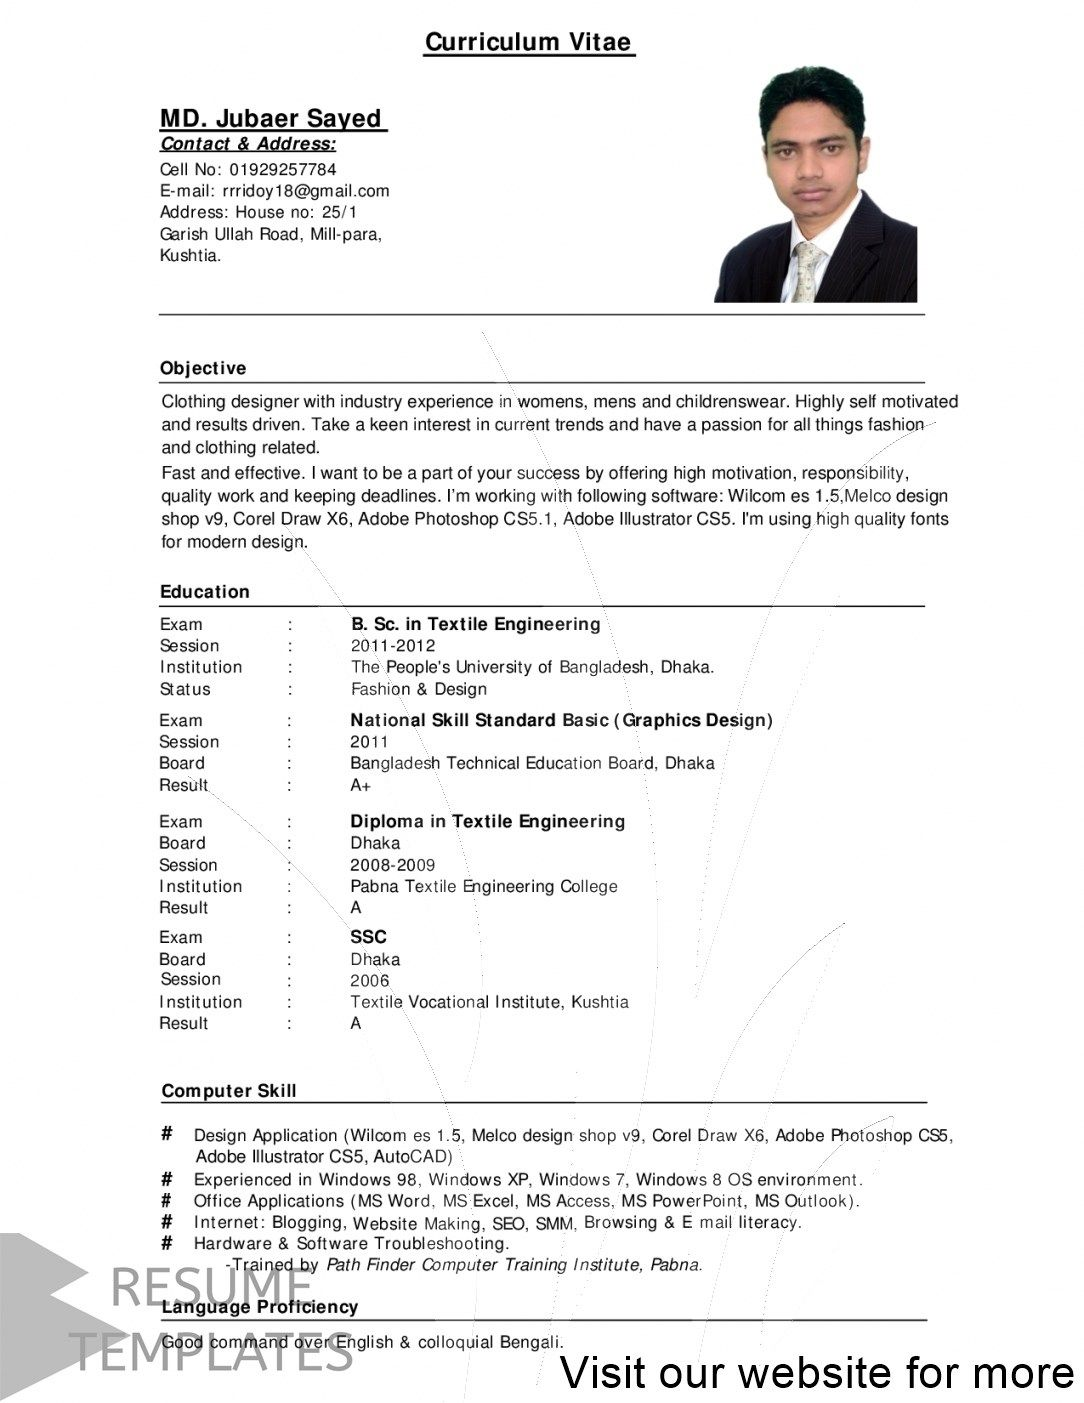 actor resume template free 2020 in 2020 Resume template